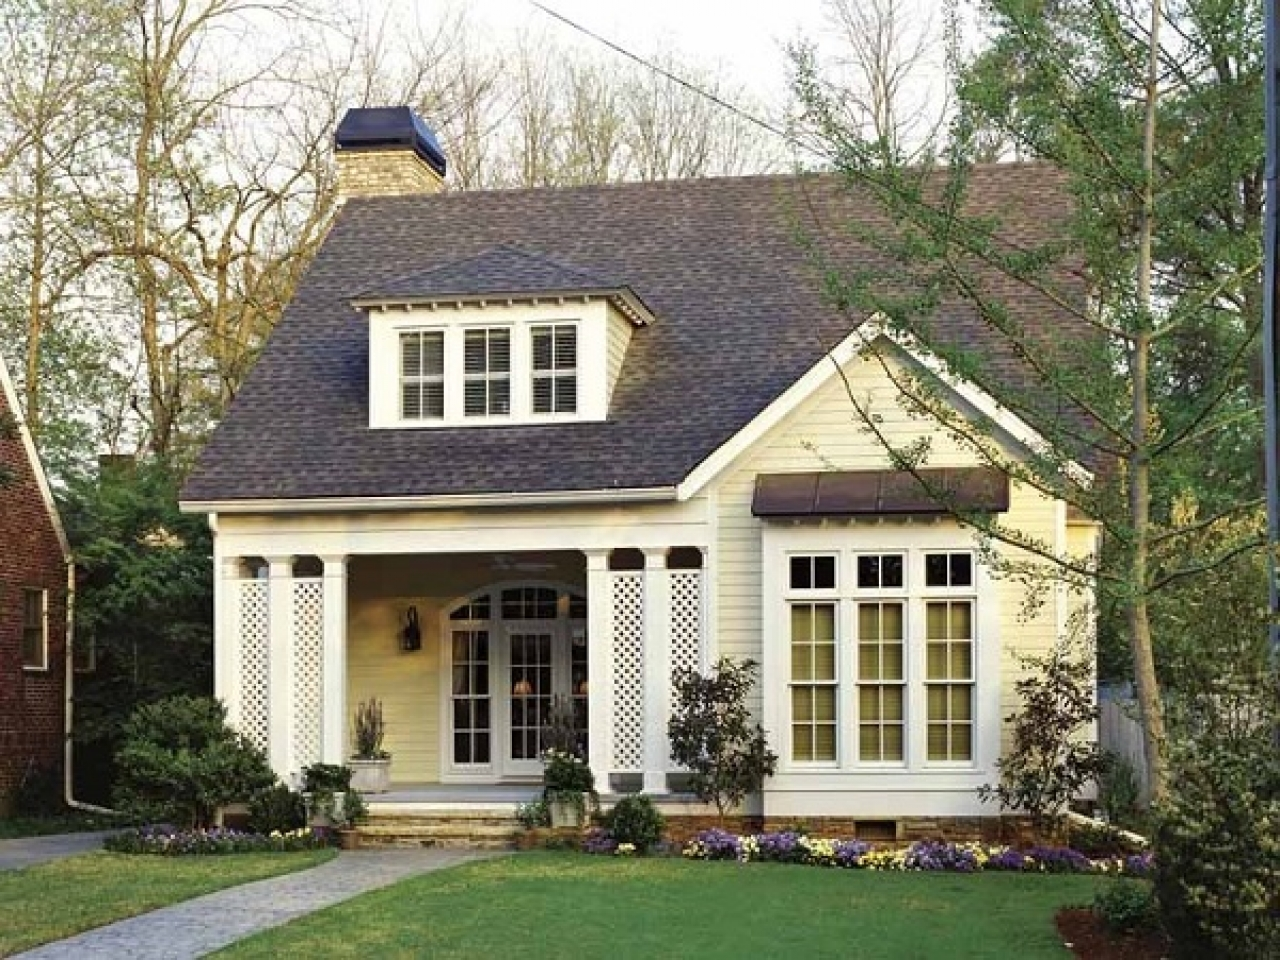 Small cottage house plans small country house plans small for Small country cabin plans